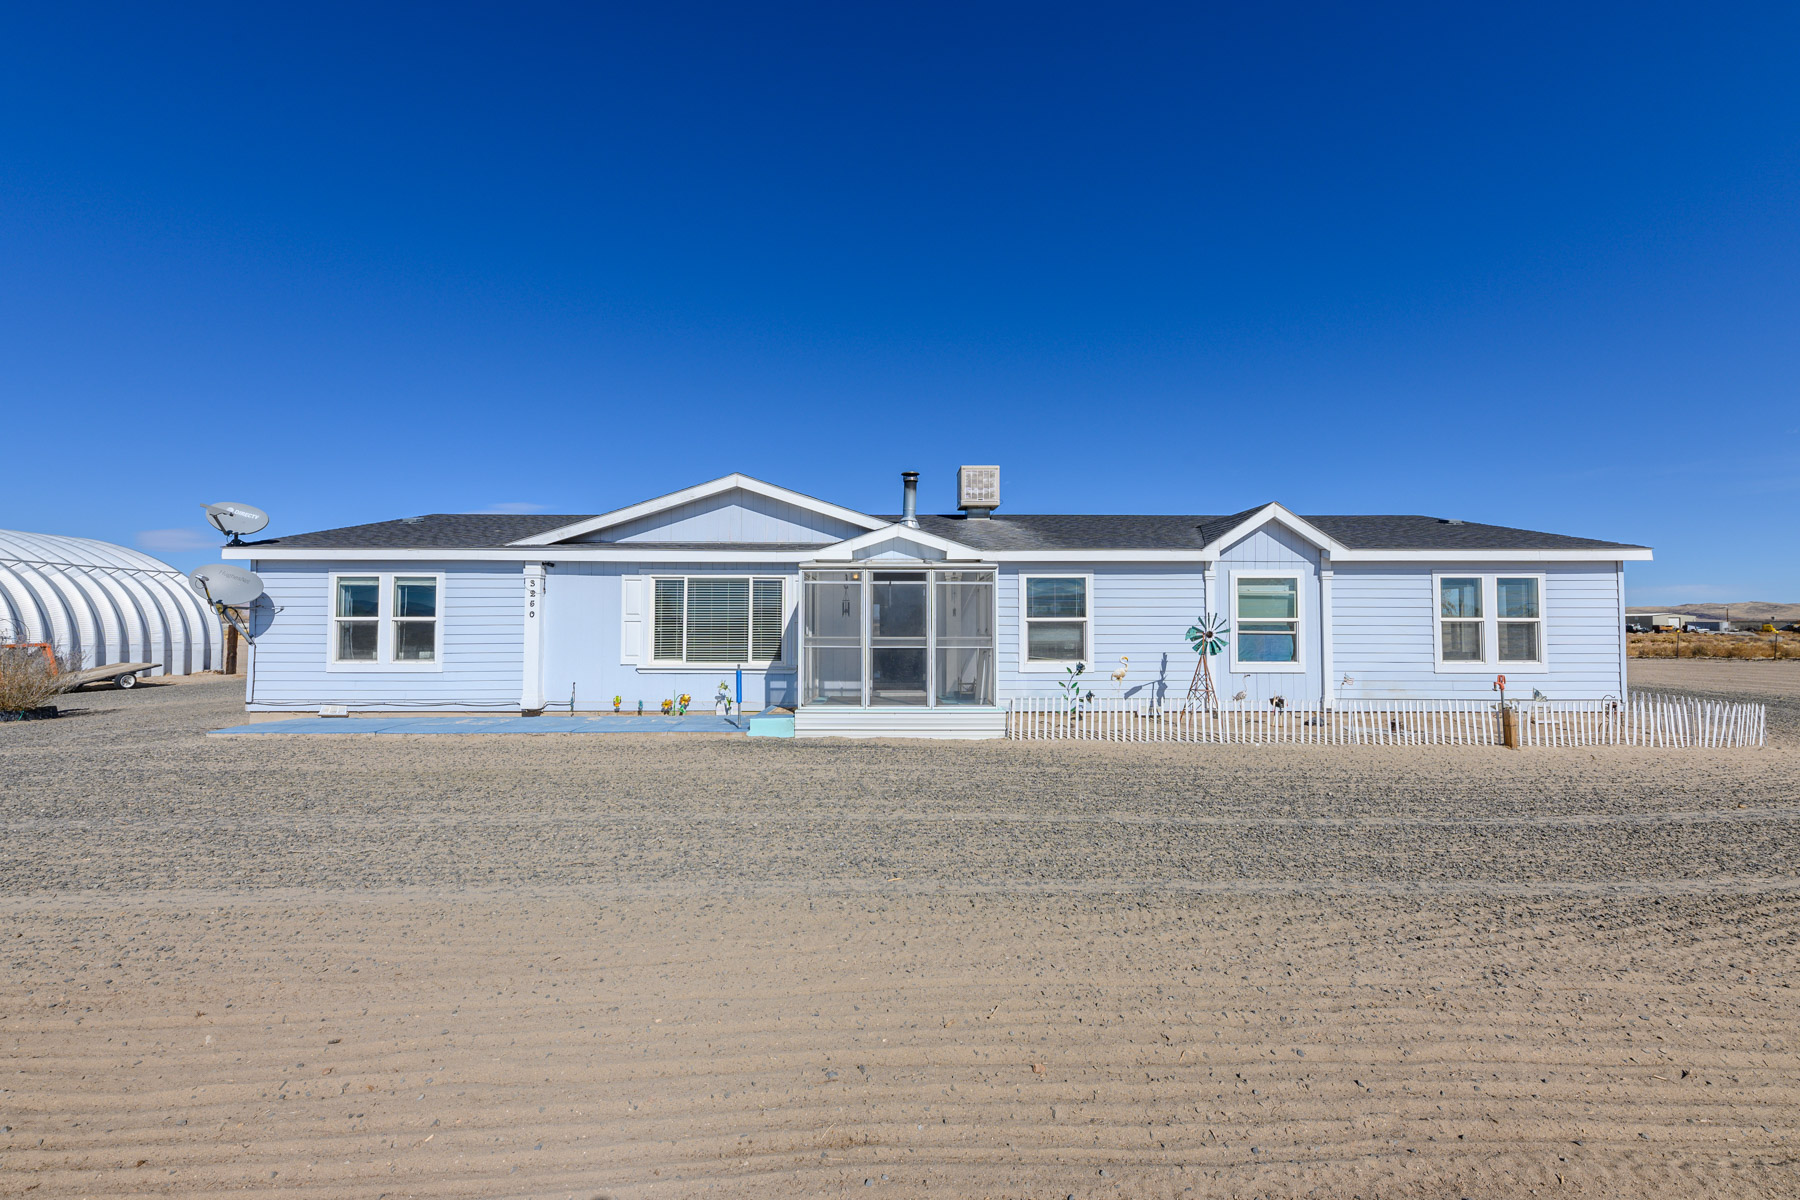 Additional photo for property listing at 3250 East 4th Street, Silver Springs, NV 89429 3250 E 4th Street Silver Springs, 内华达州 89429 美国